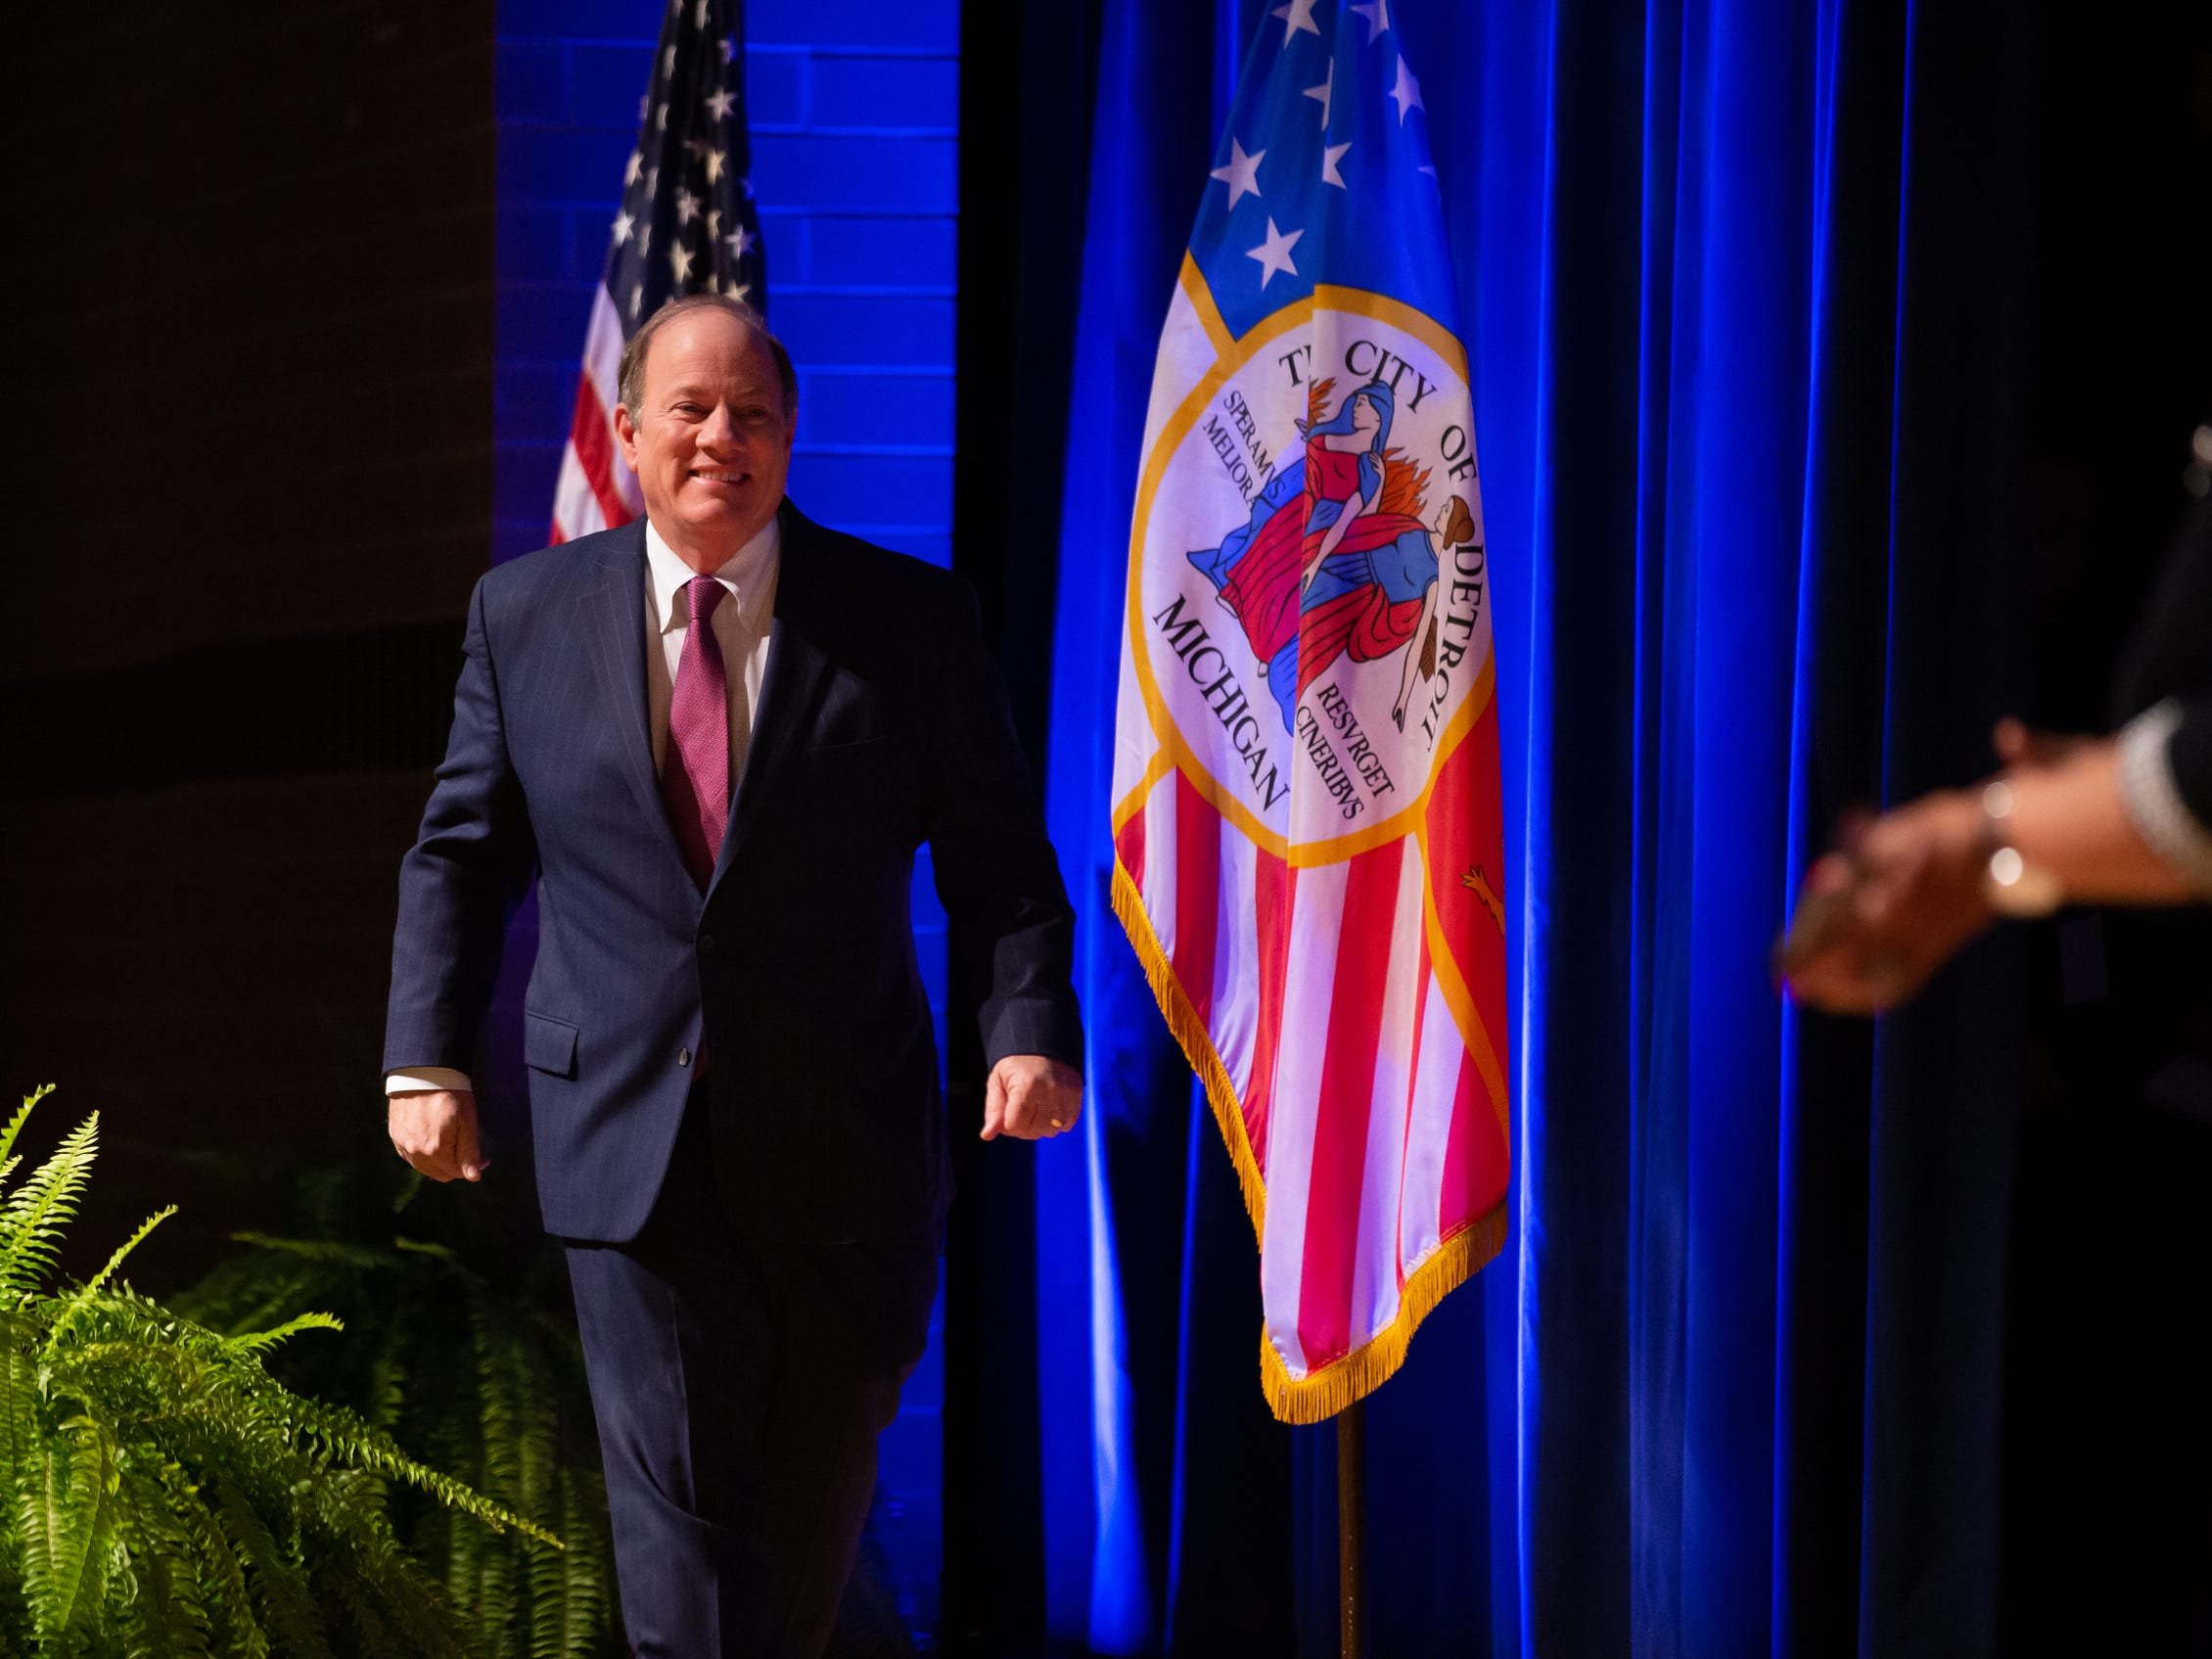 Detroit Mayor Mike Duggan takes the stage to speak during the 2019 State of the City Address on Tuesday, March 5, 2019 at East English Village Preparatory Academy in Detroit.